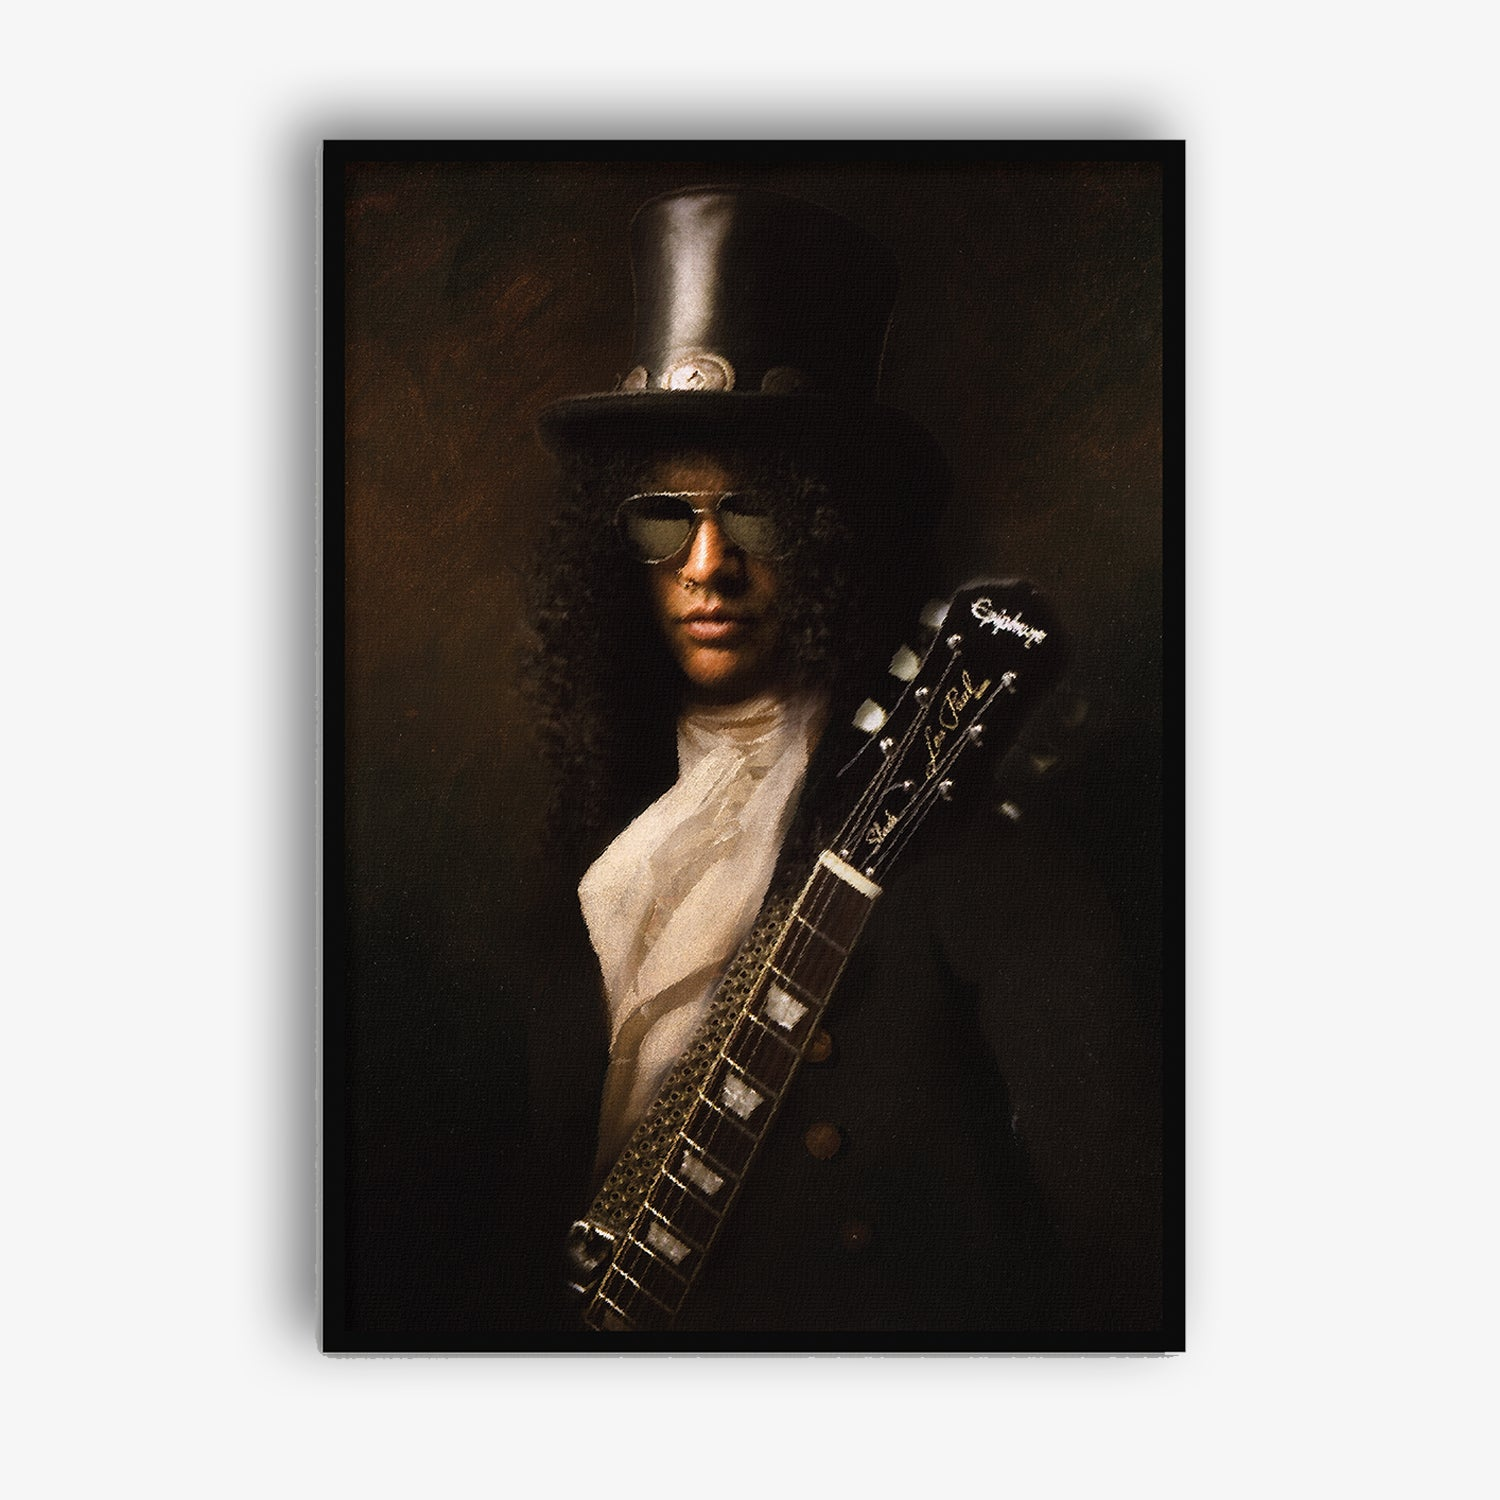 painted canvas art of Slash by Mood Prints at Secret Location Concept Store